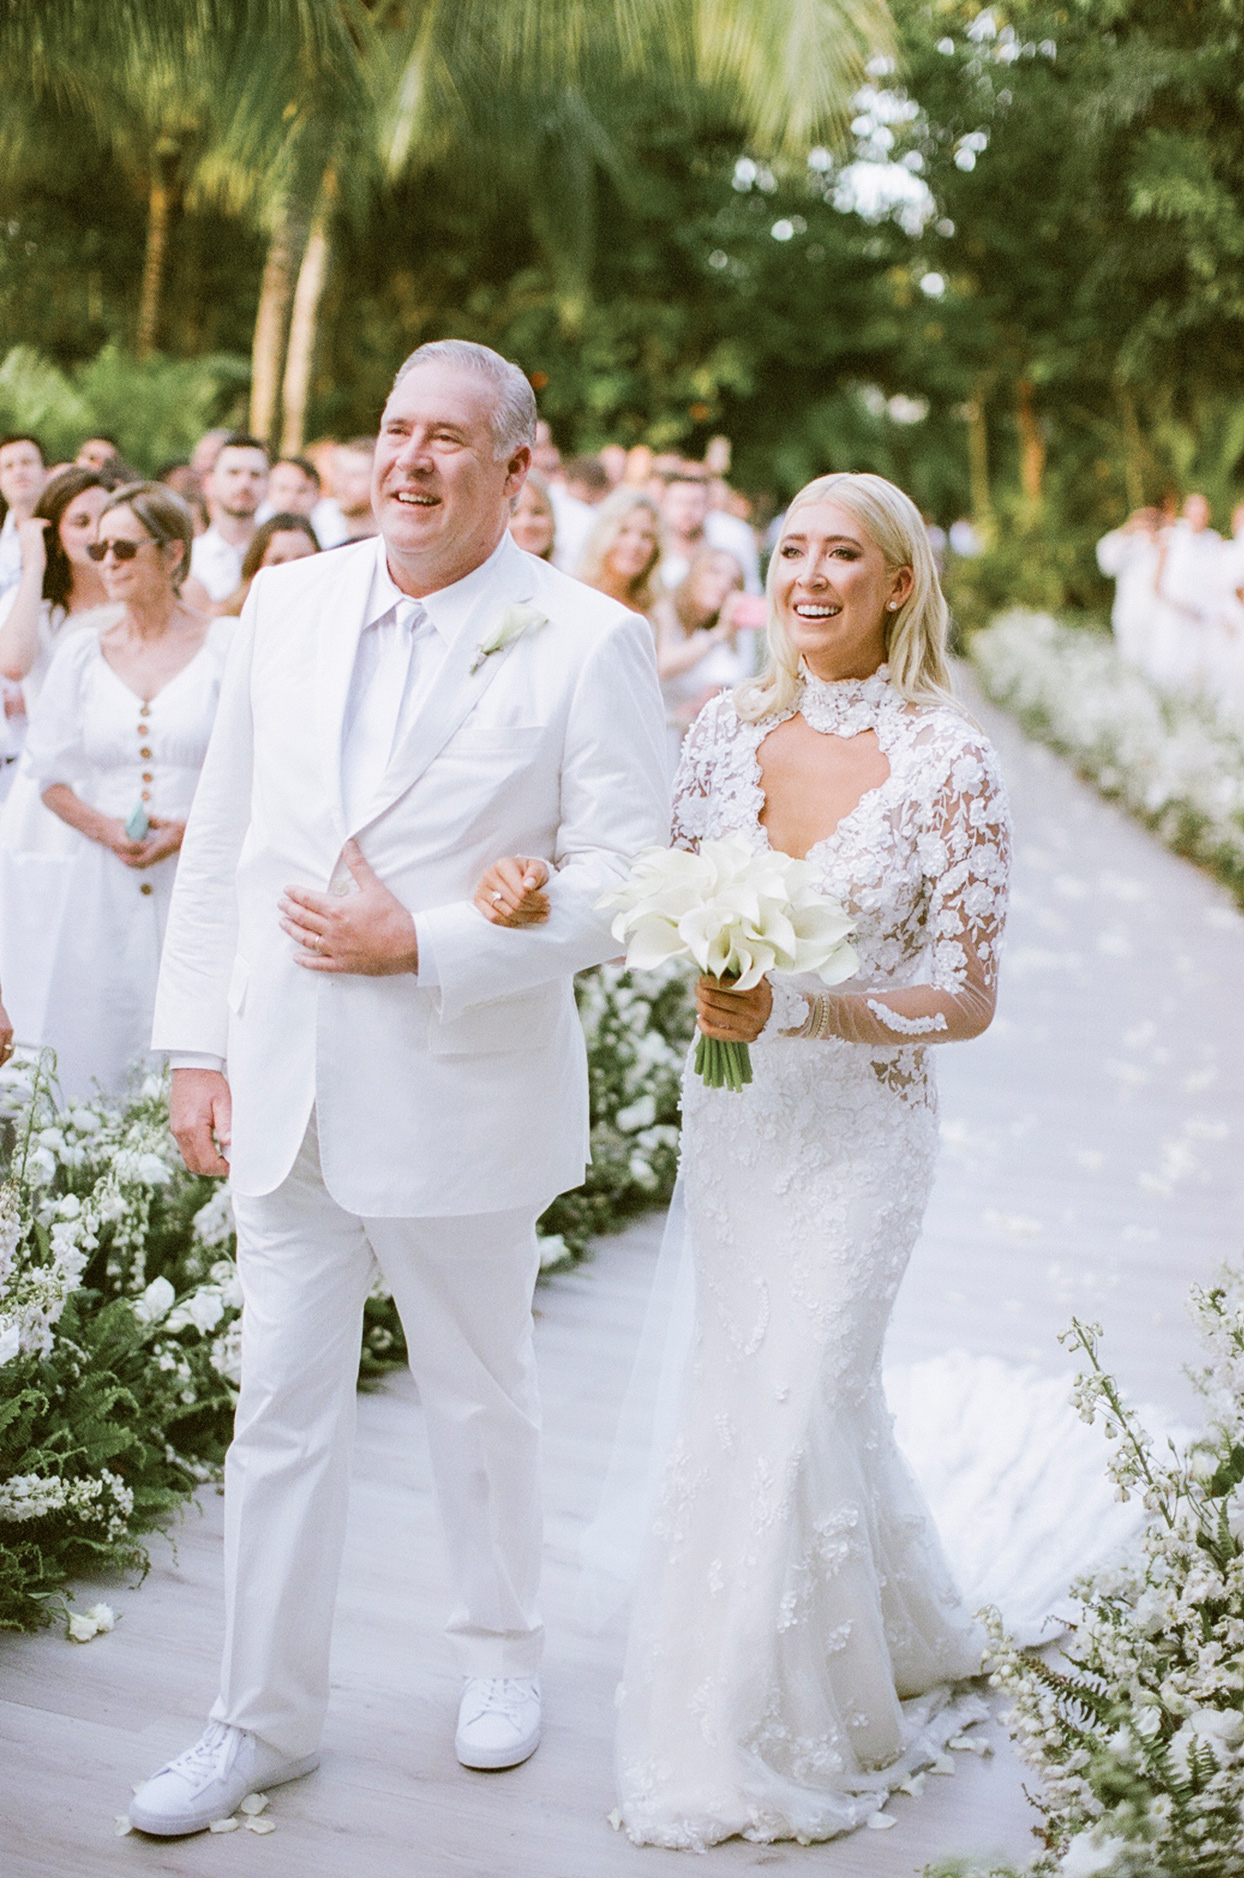 father of the bride walking bride down processional aisle smiling